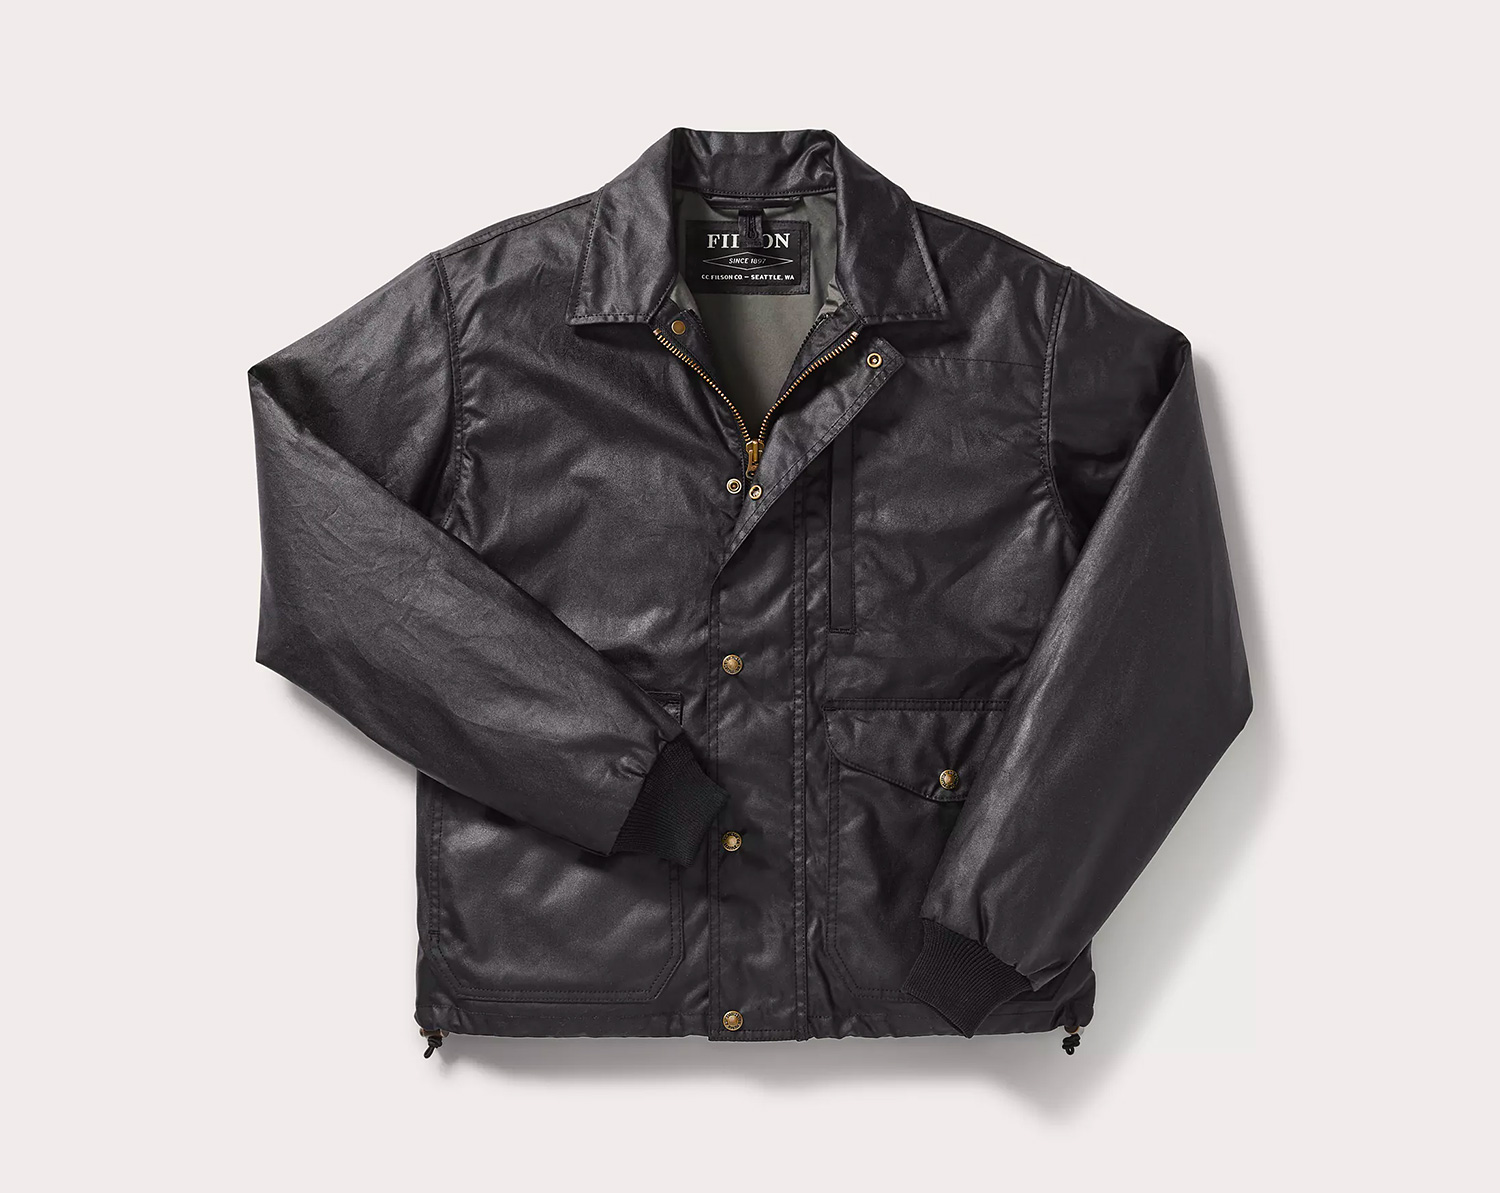 Filson's Aberdeen Work Jacket is Ready for Spring Showers at werd.com